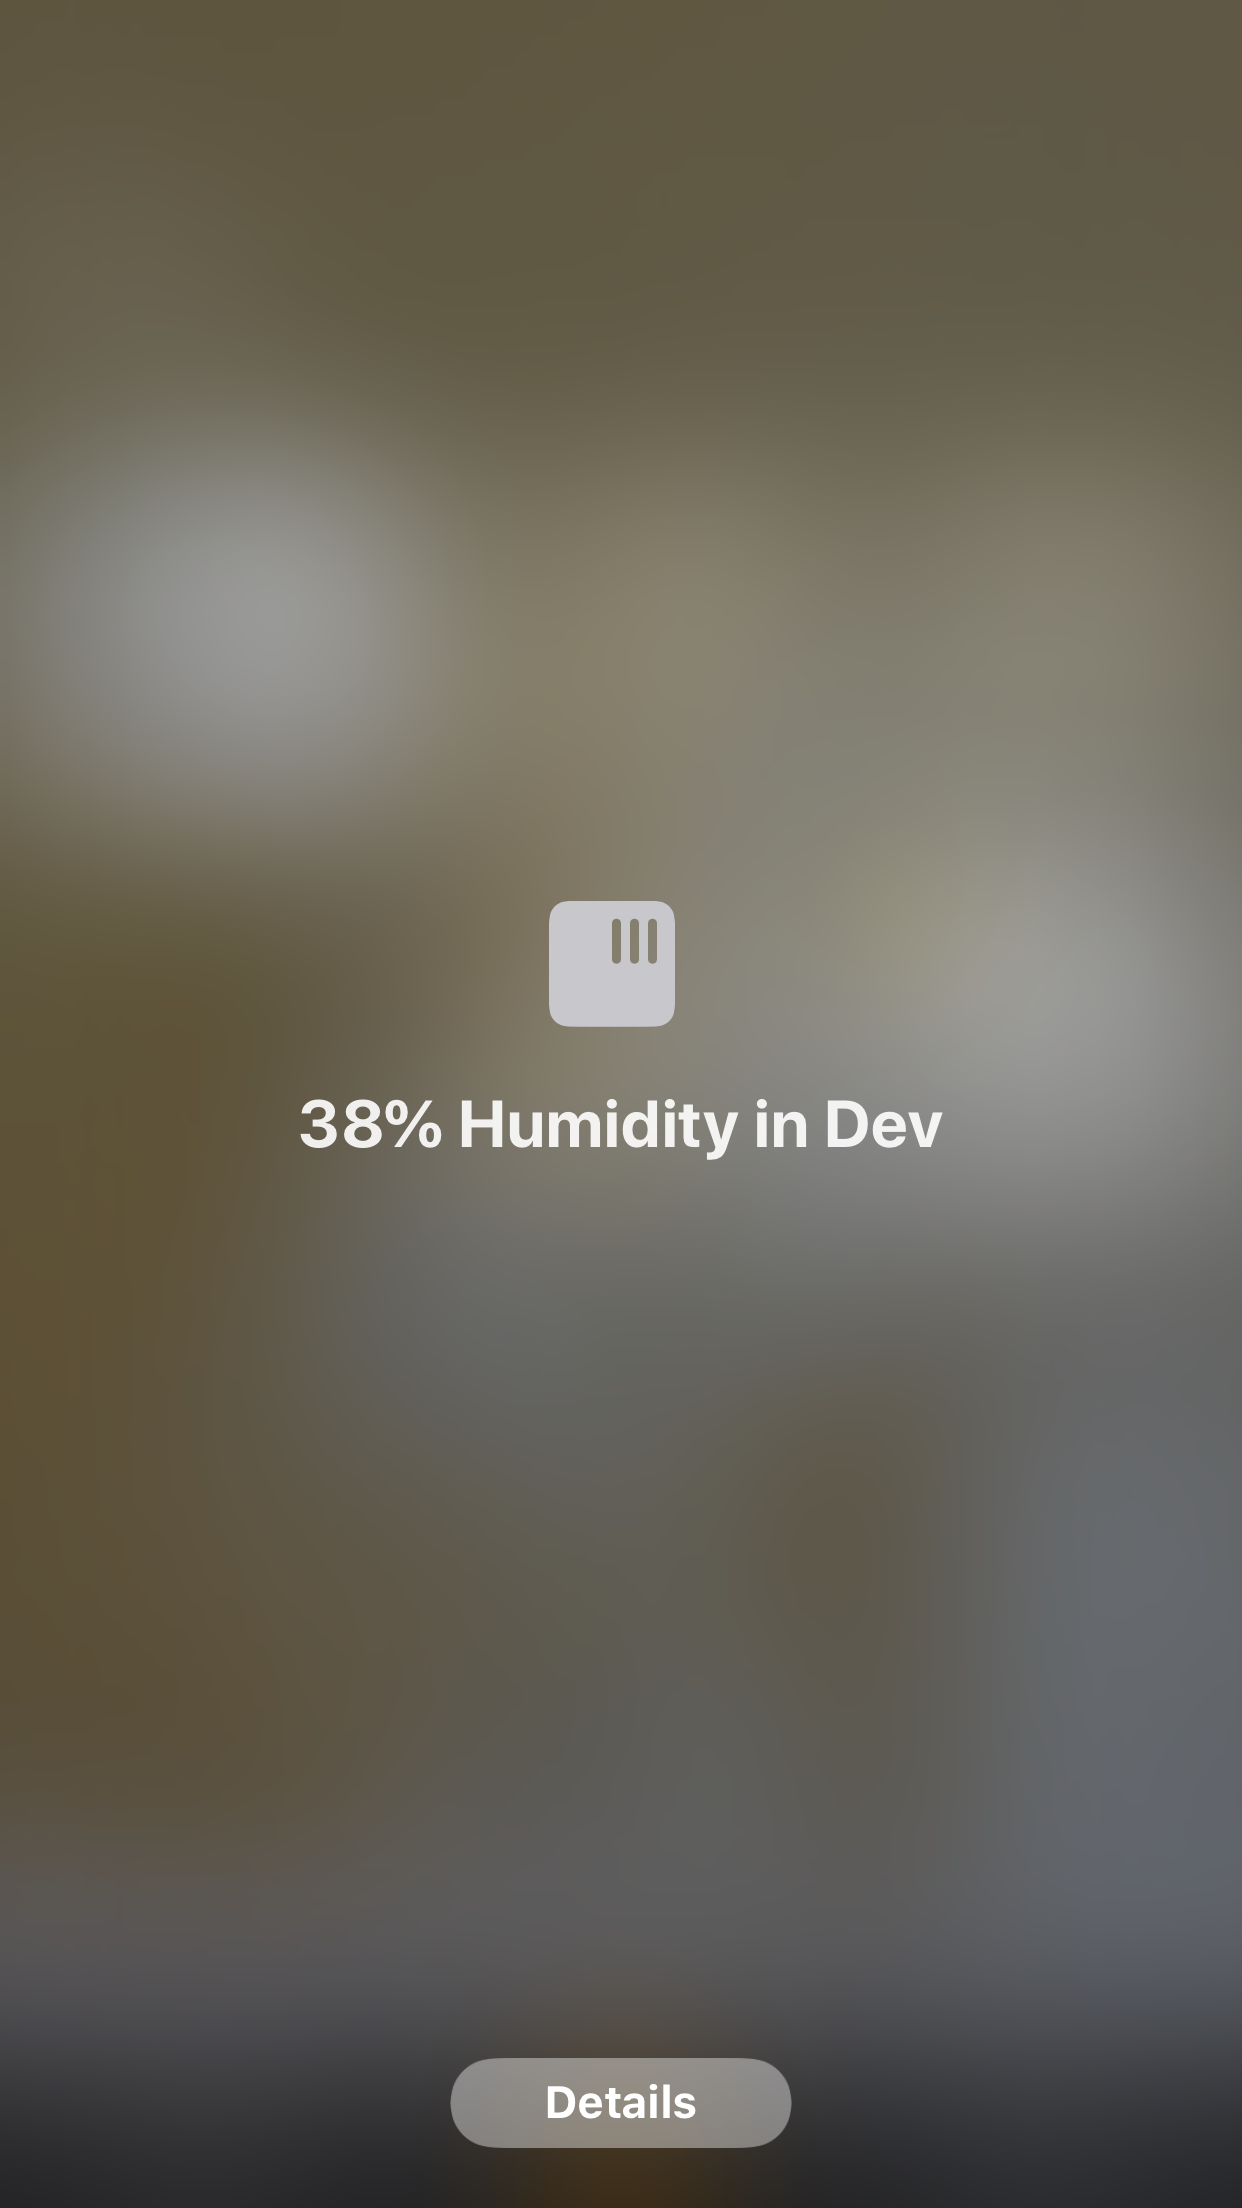 Humidity Overview